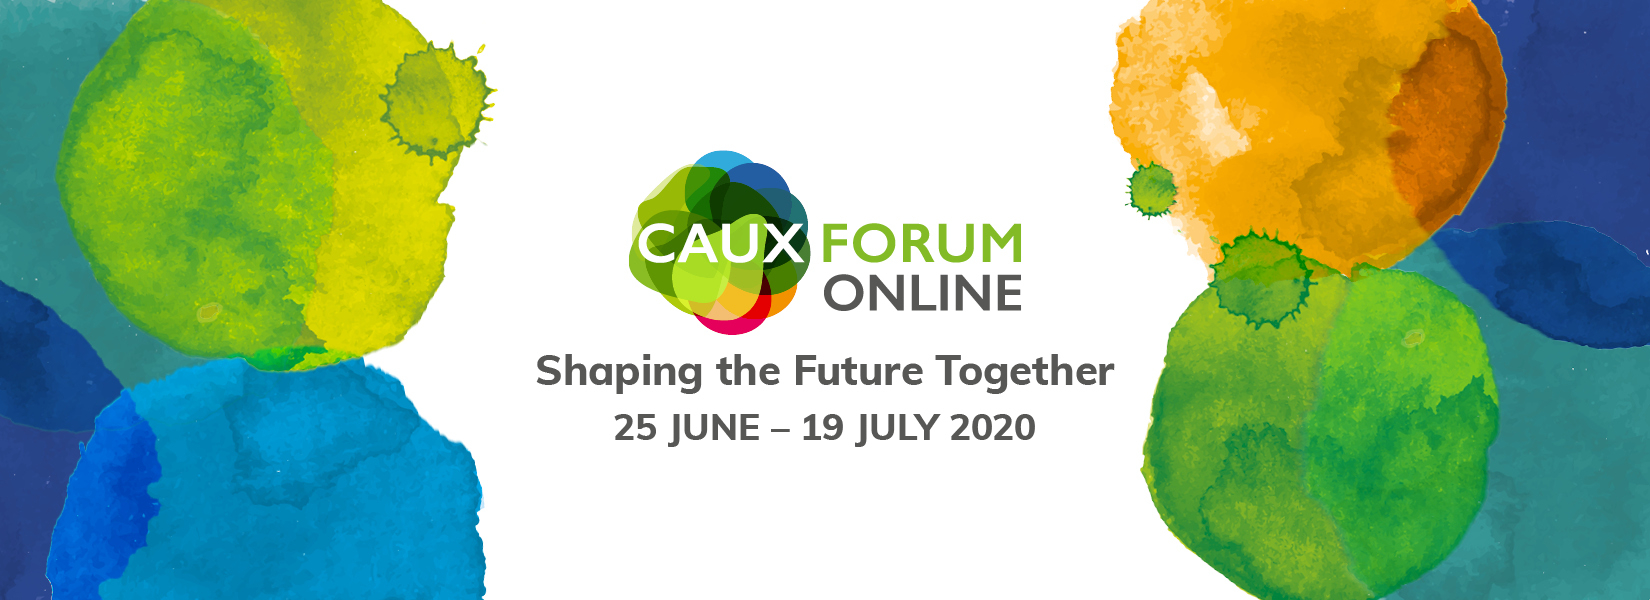 Caux Forum Online 2020 general slider